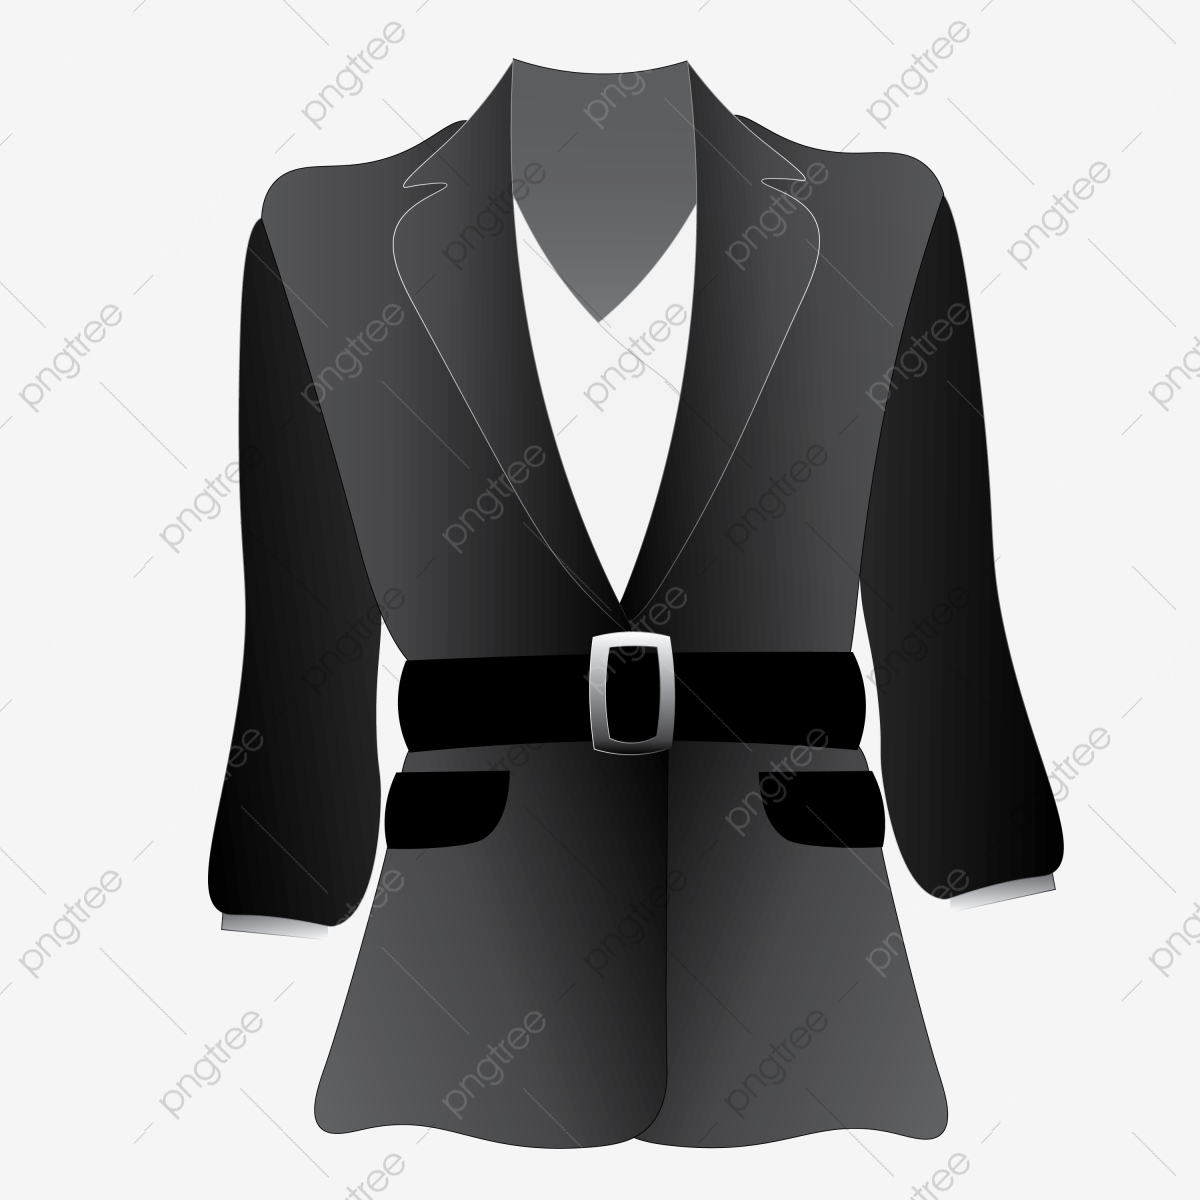 women suit png vector psd and clipart with transparent background for free download pngtree https pngtree com freepng black women suit vector 5477211 html